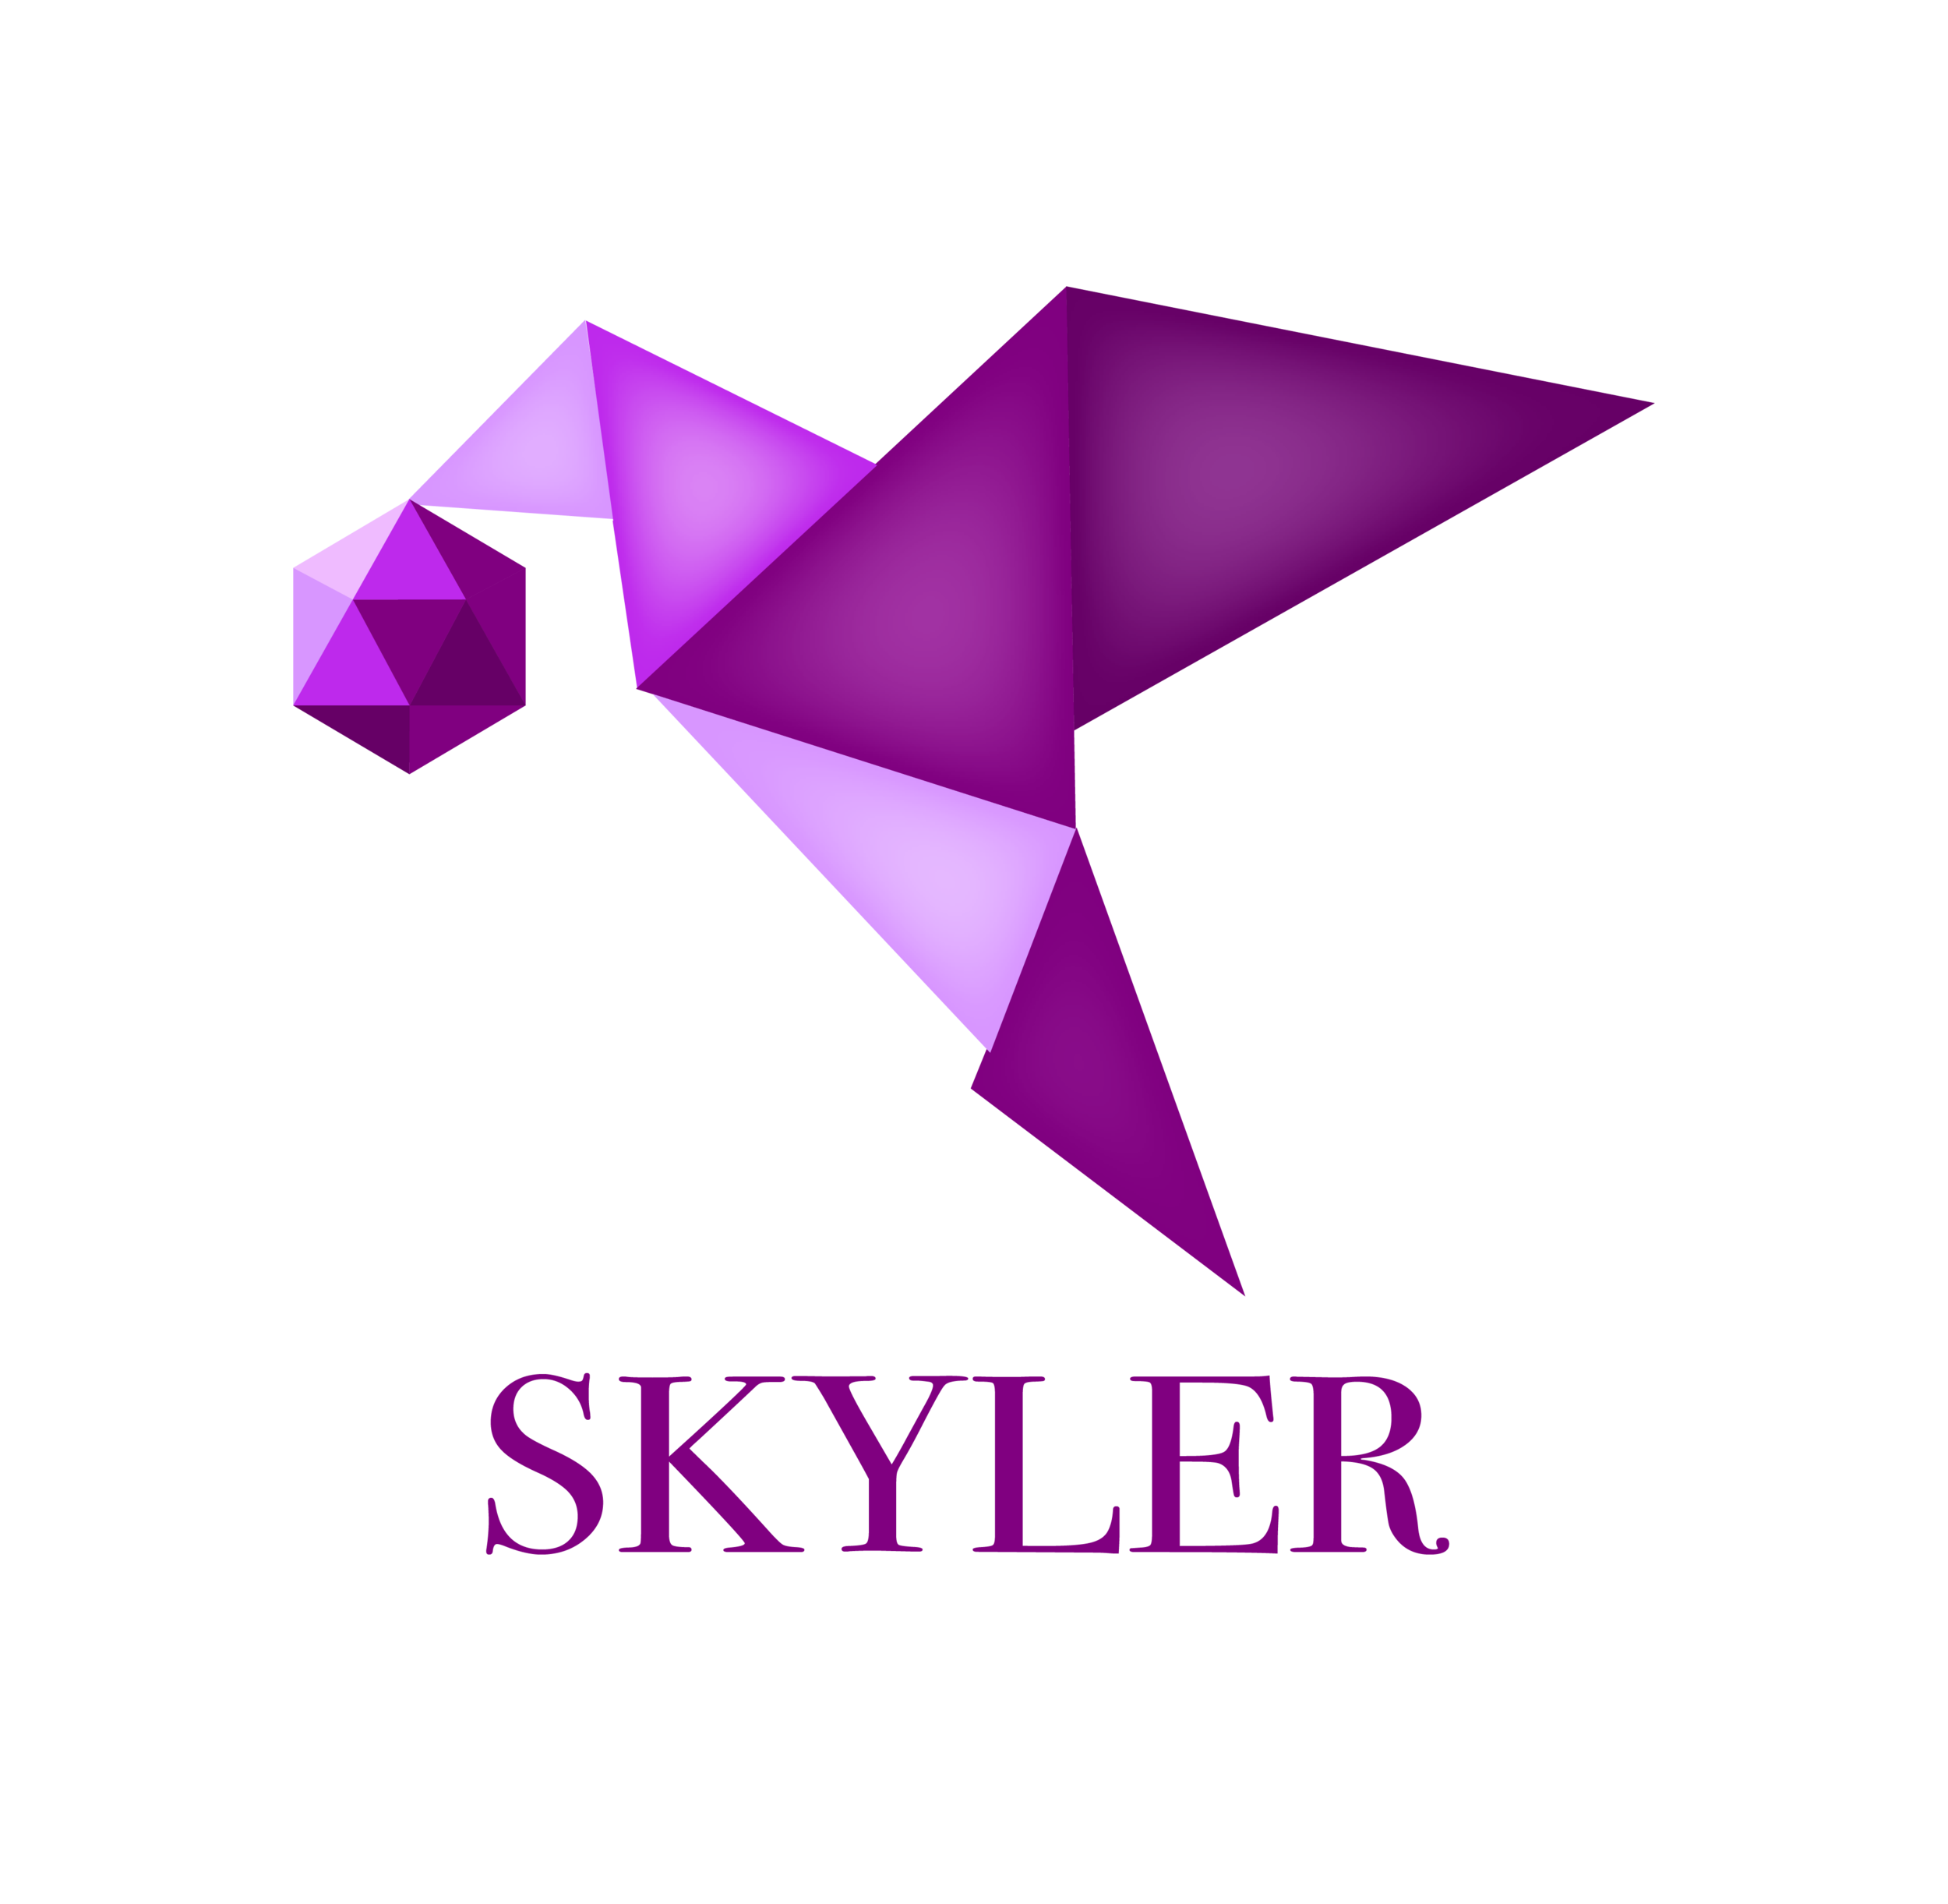 Skyler is a tool that helps teachers and students manage project-based learning from  beginning to end.